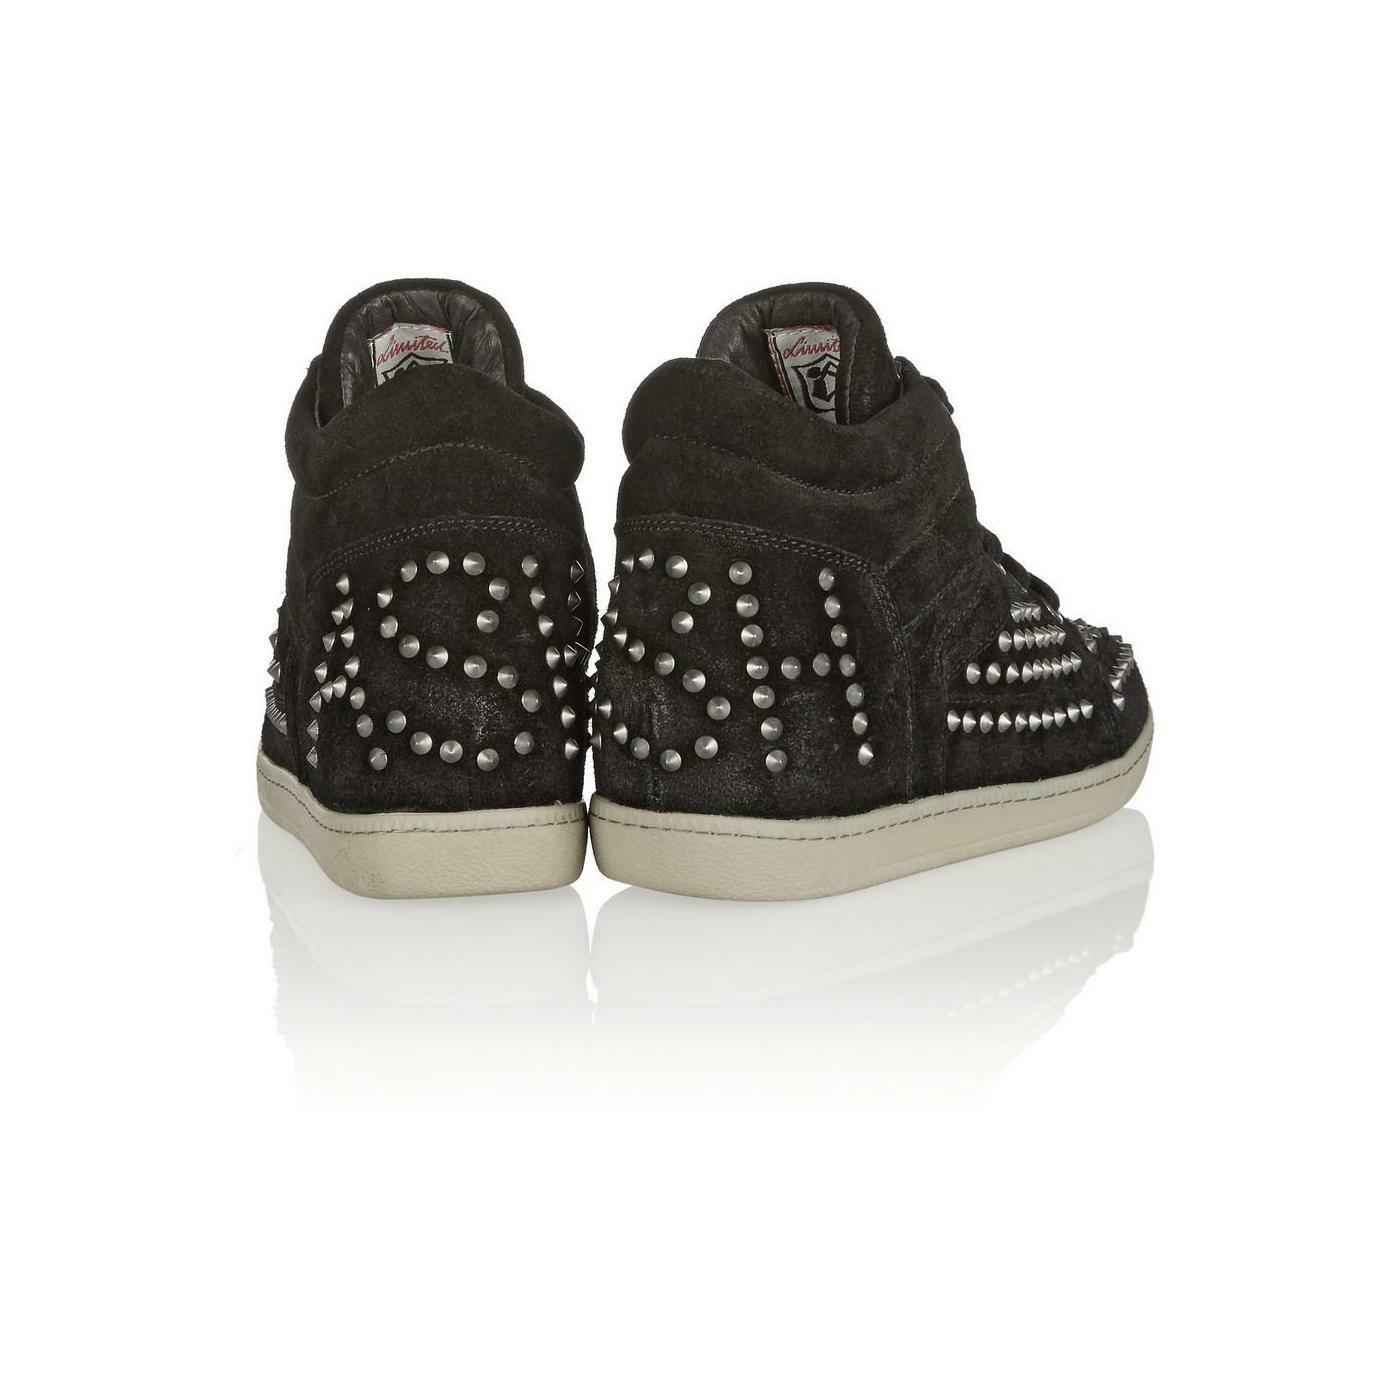 ASH ZEST Suede Sneakers, Black, Silver Studs Studs Studs Euro Size 35M CLEARANCE 935855